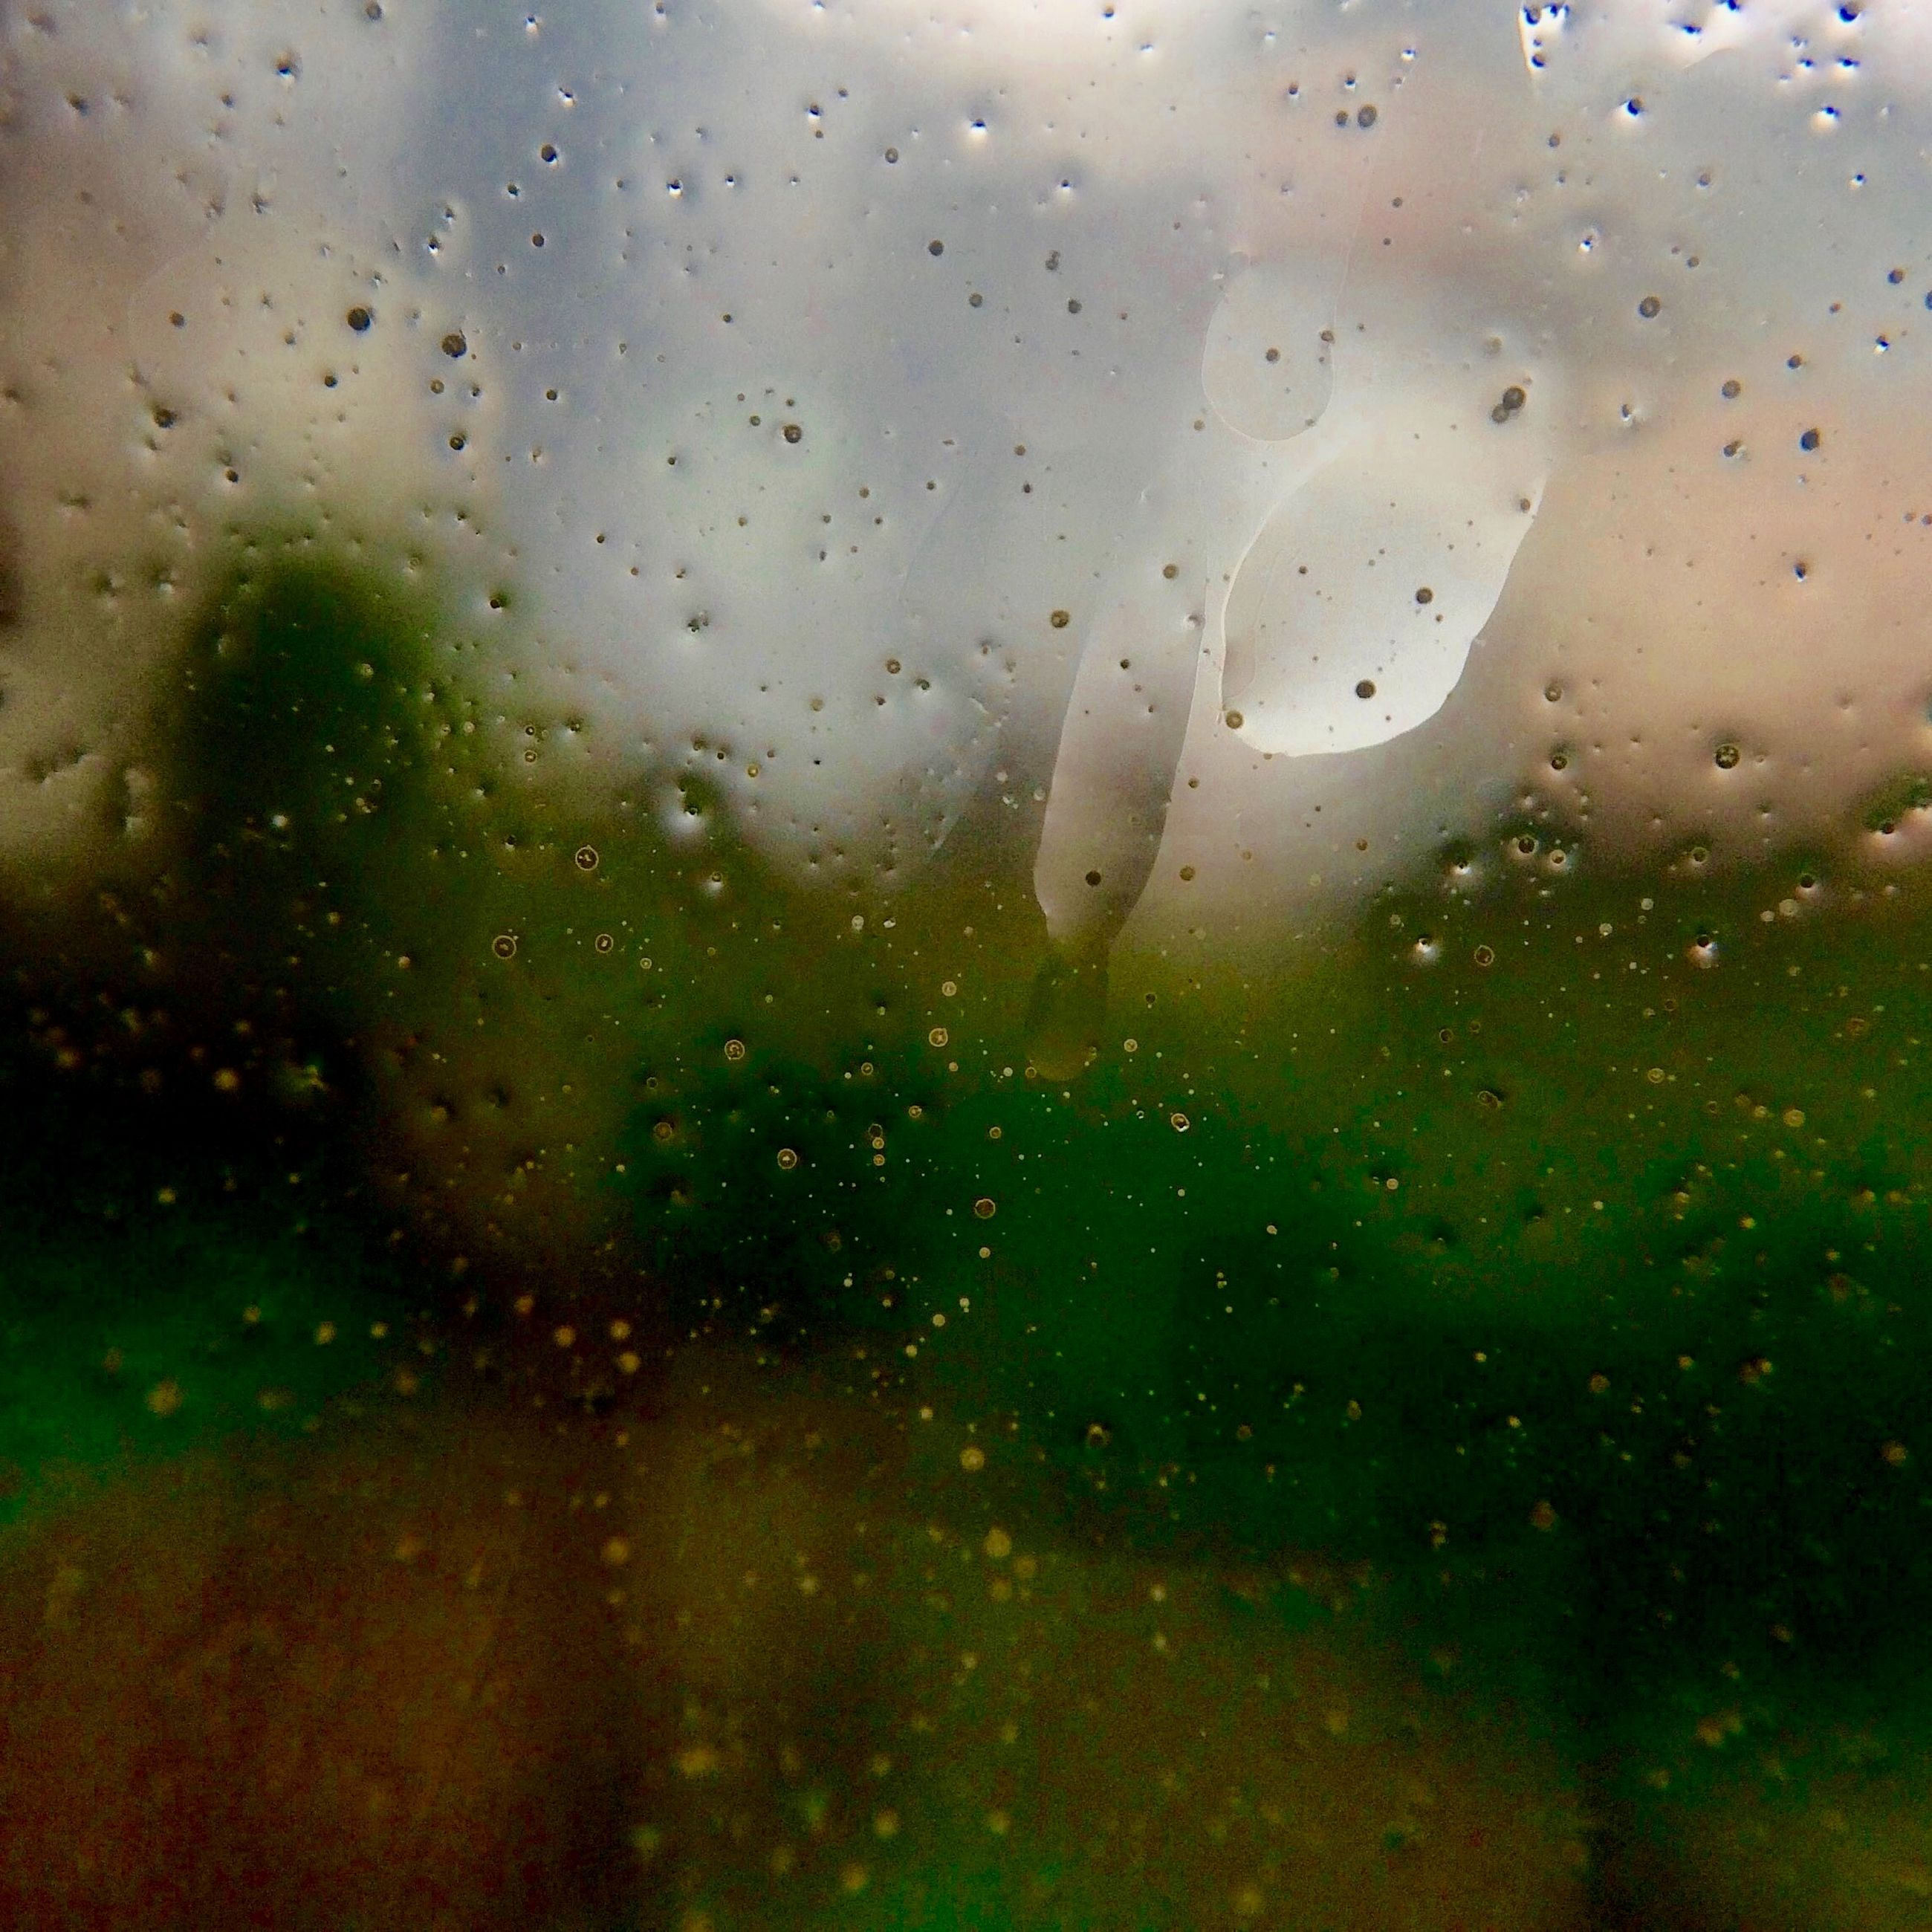 drop, window, wet, transparent, glass - material, water, rain, indoors, raindrop, weather, sky, glass, full frame, season, backgrounds, water drop, close-up, focus on foreground, nature, no people